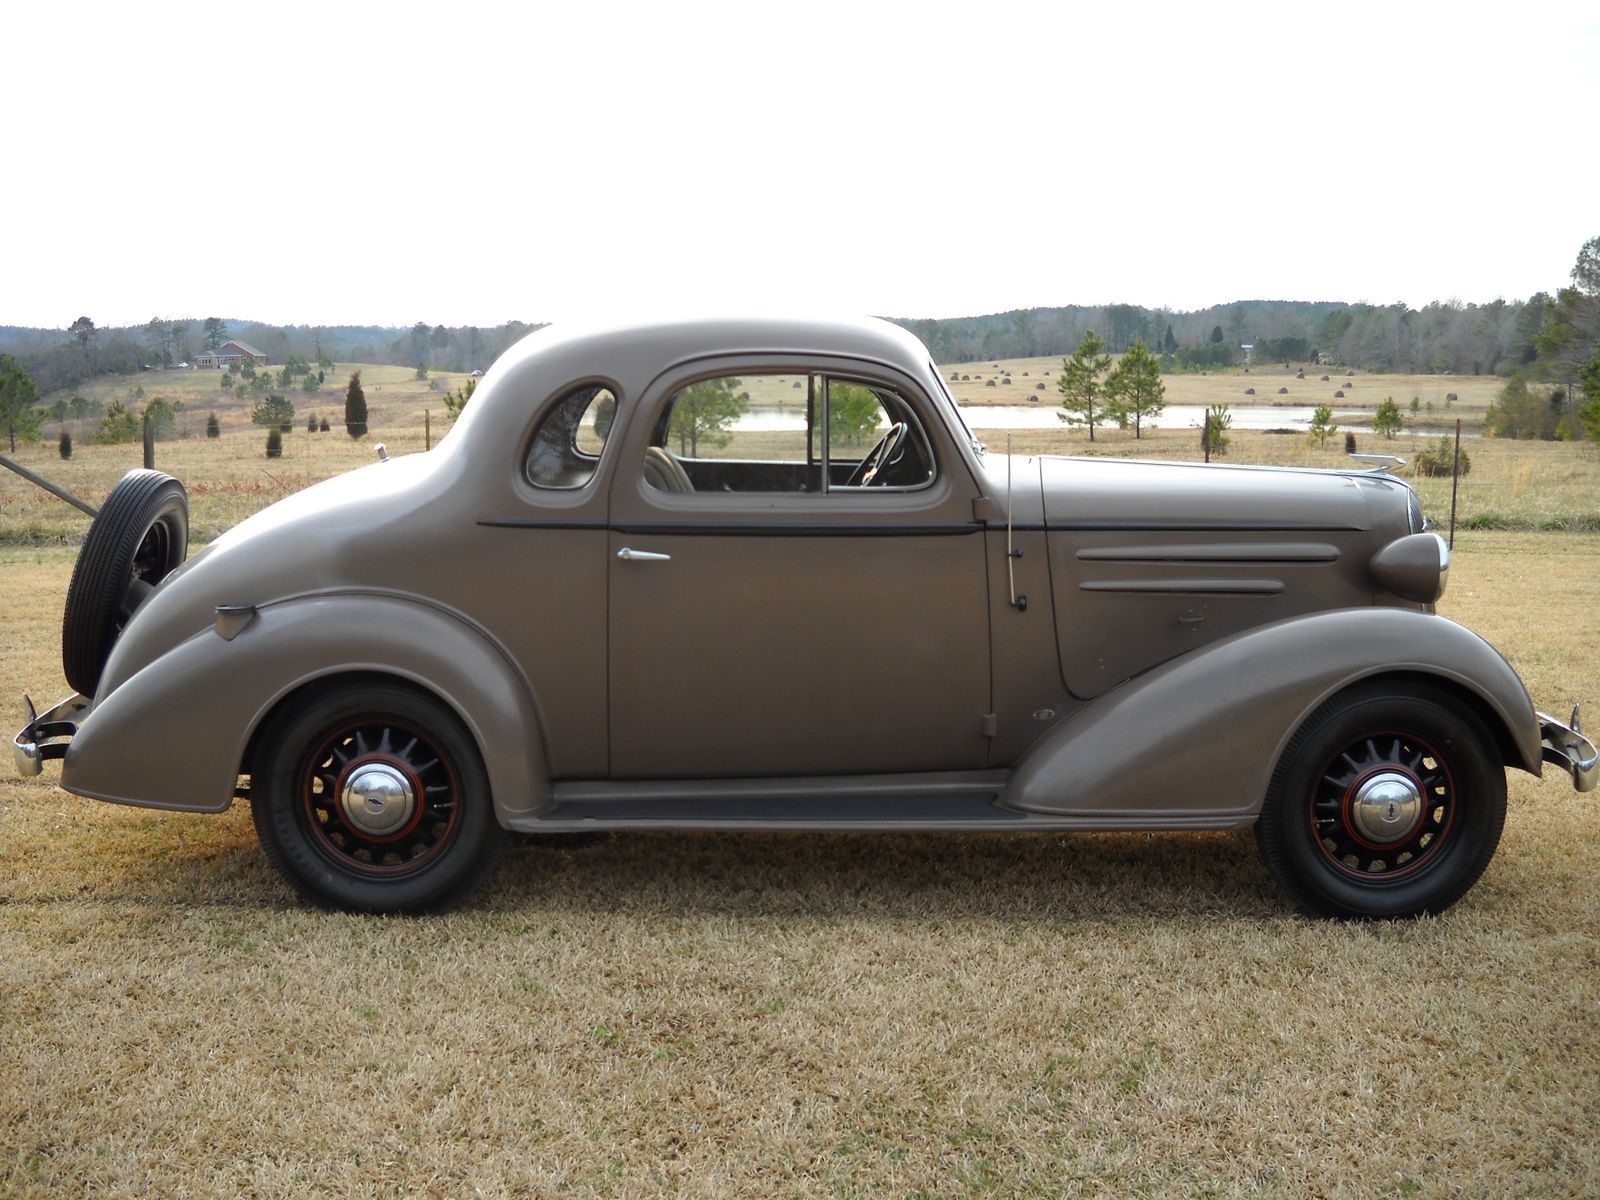 1936 chevrolet coupe pickup information and photos momentcar diagram as well 1936 chevy coupe project car for sale on 1936 packard [ 1600 x 1200 Pixel ]